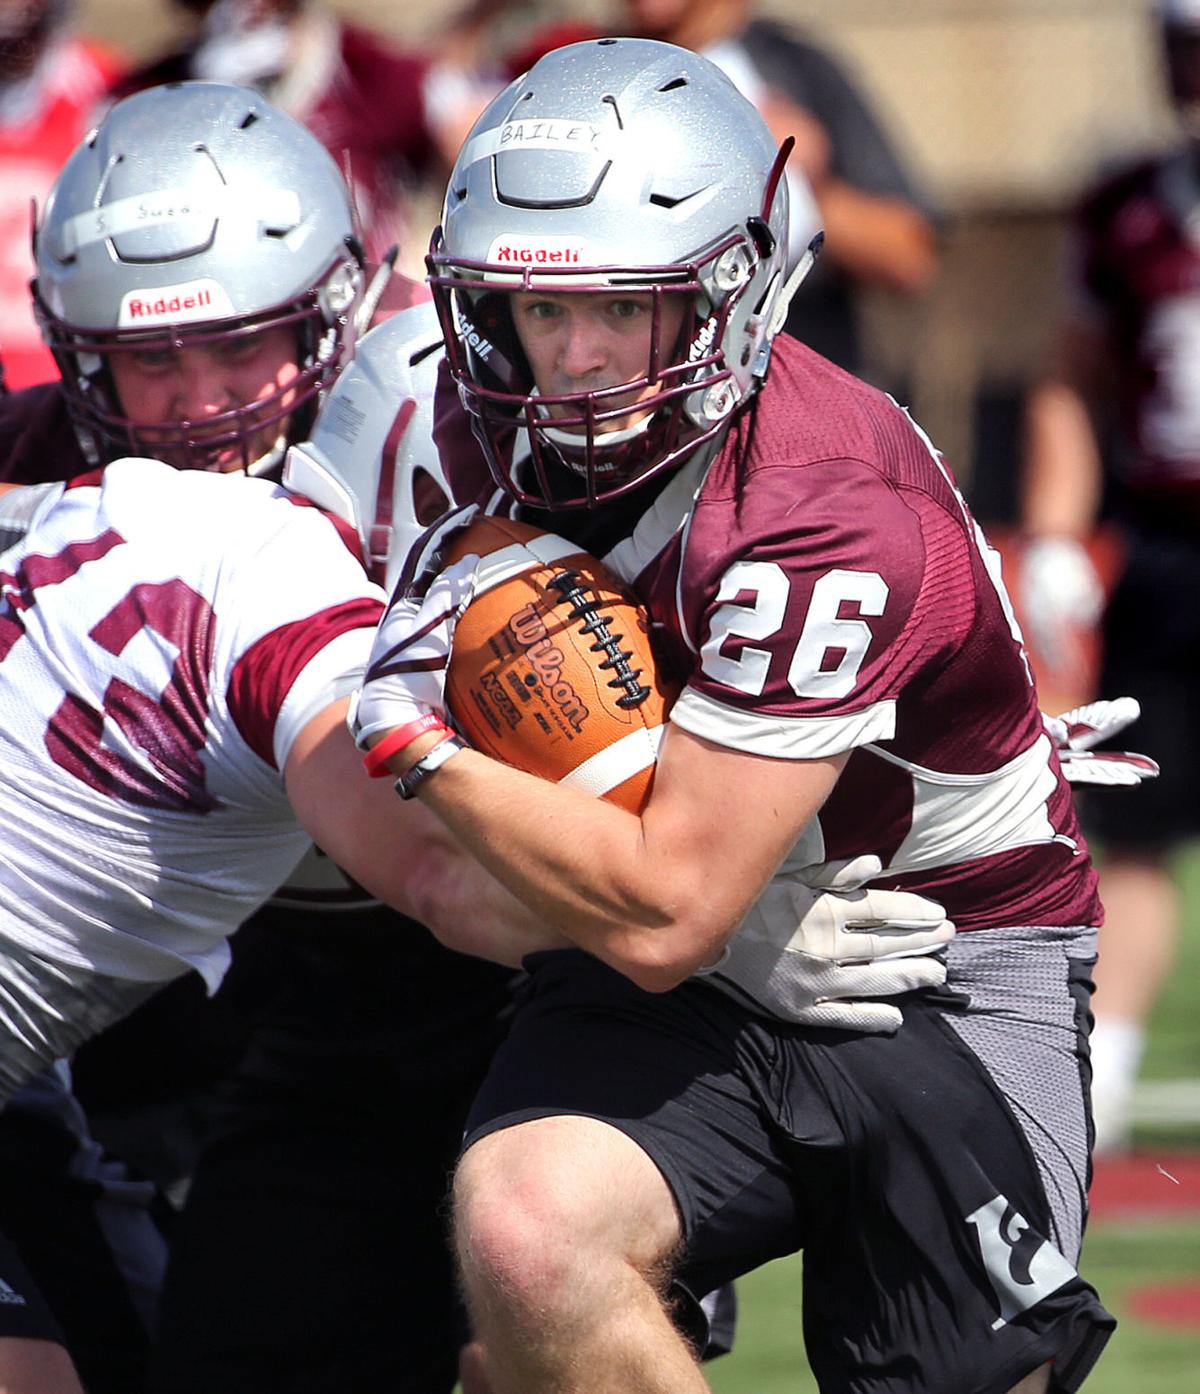 UW-La Crosse football: Smaller camp roster lessens effect of no two-a-days